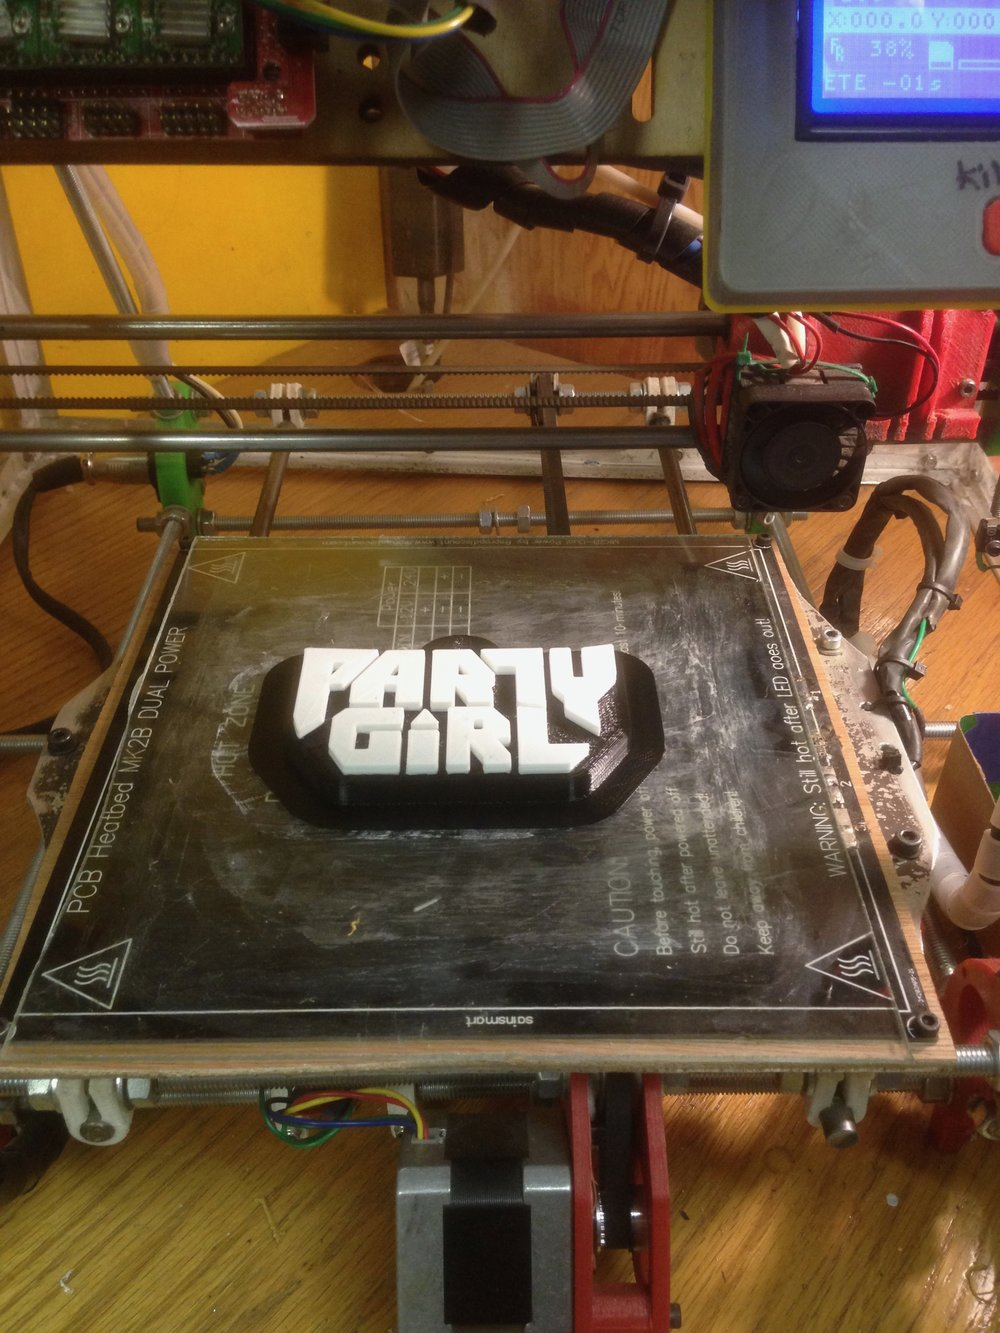 3D PRINTING   Over a half-dozen SLA & FDM printers churning out prints with a resolution of up to 20 microns.  $40/hr